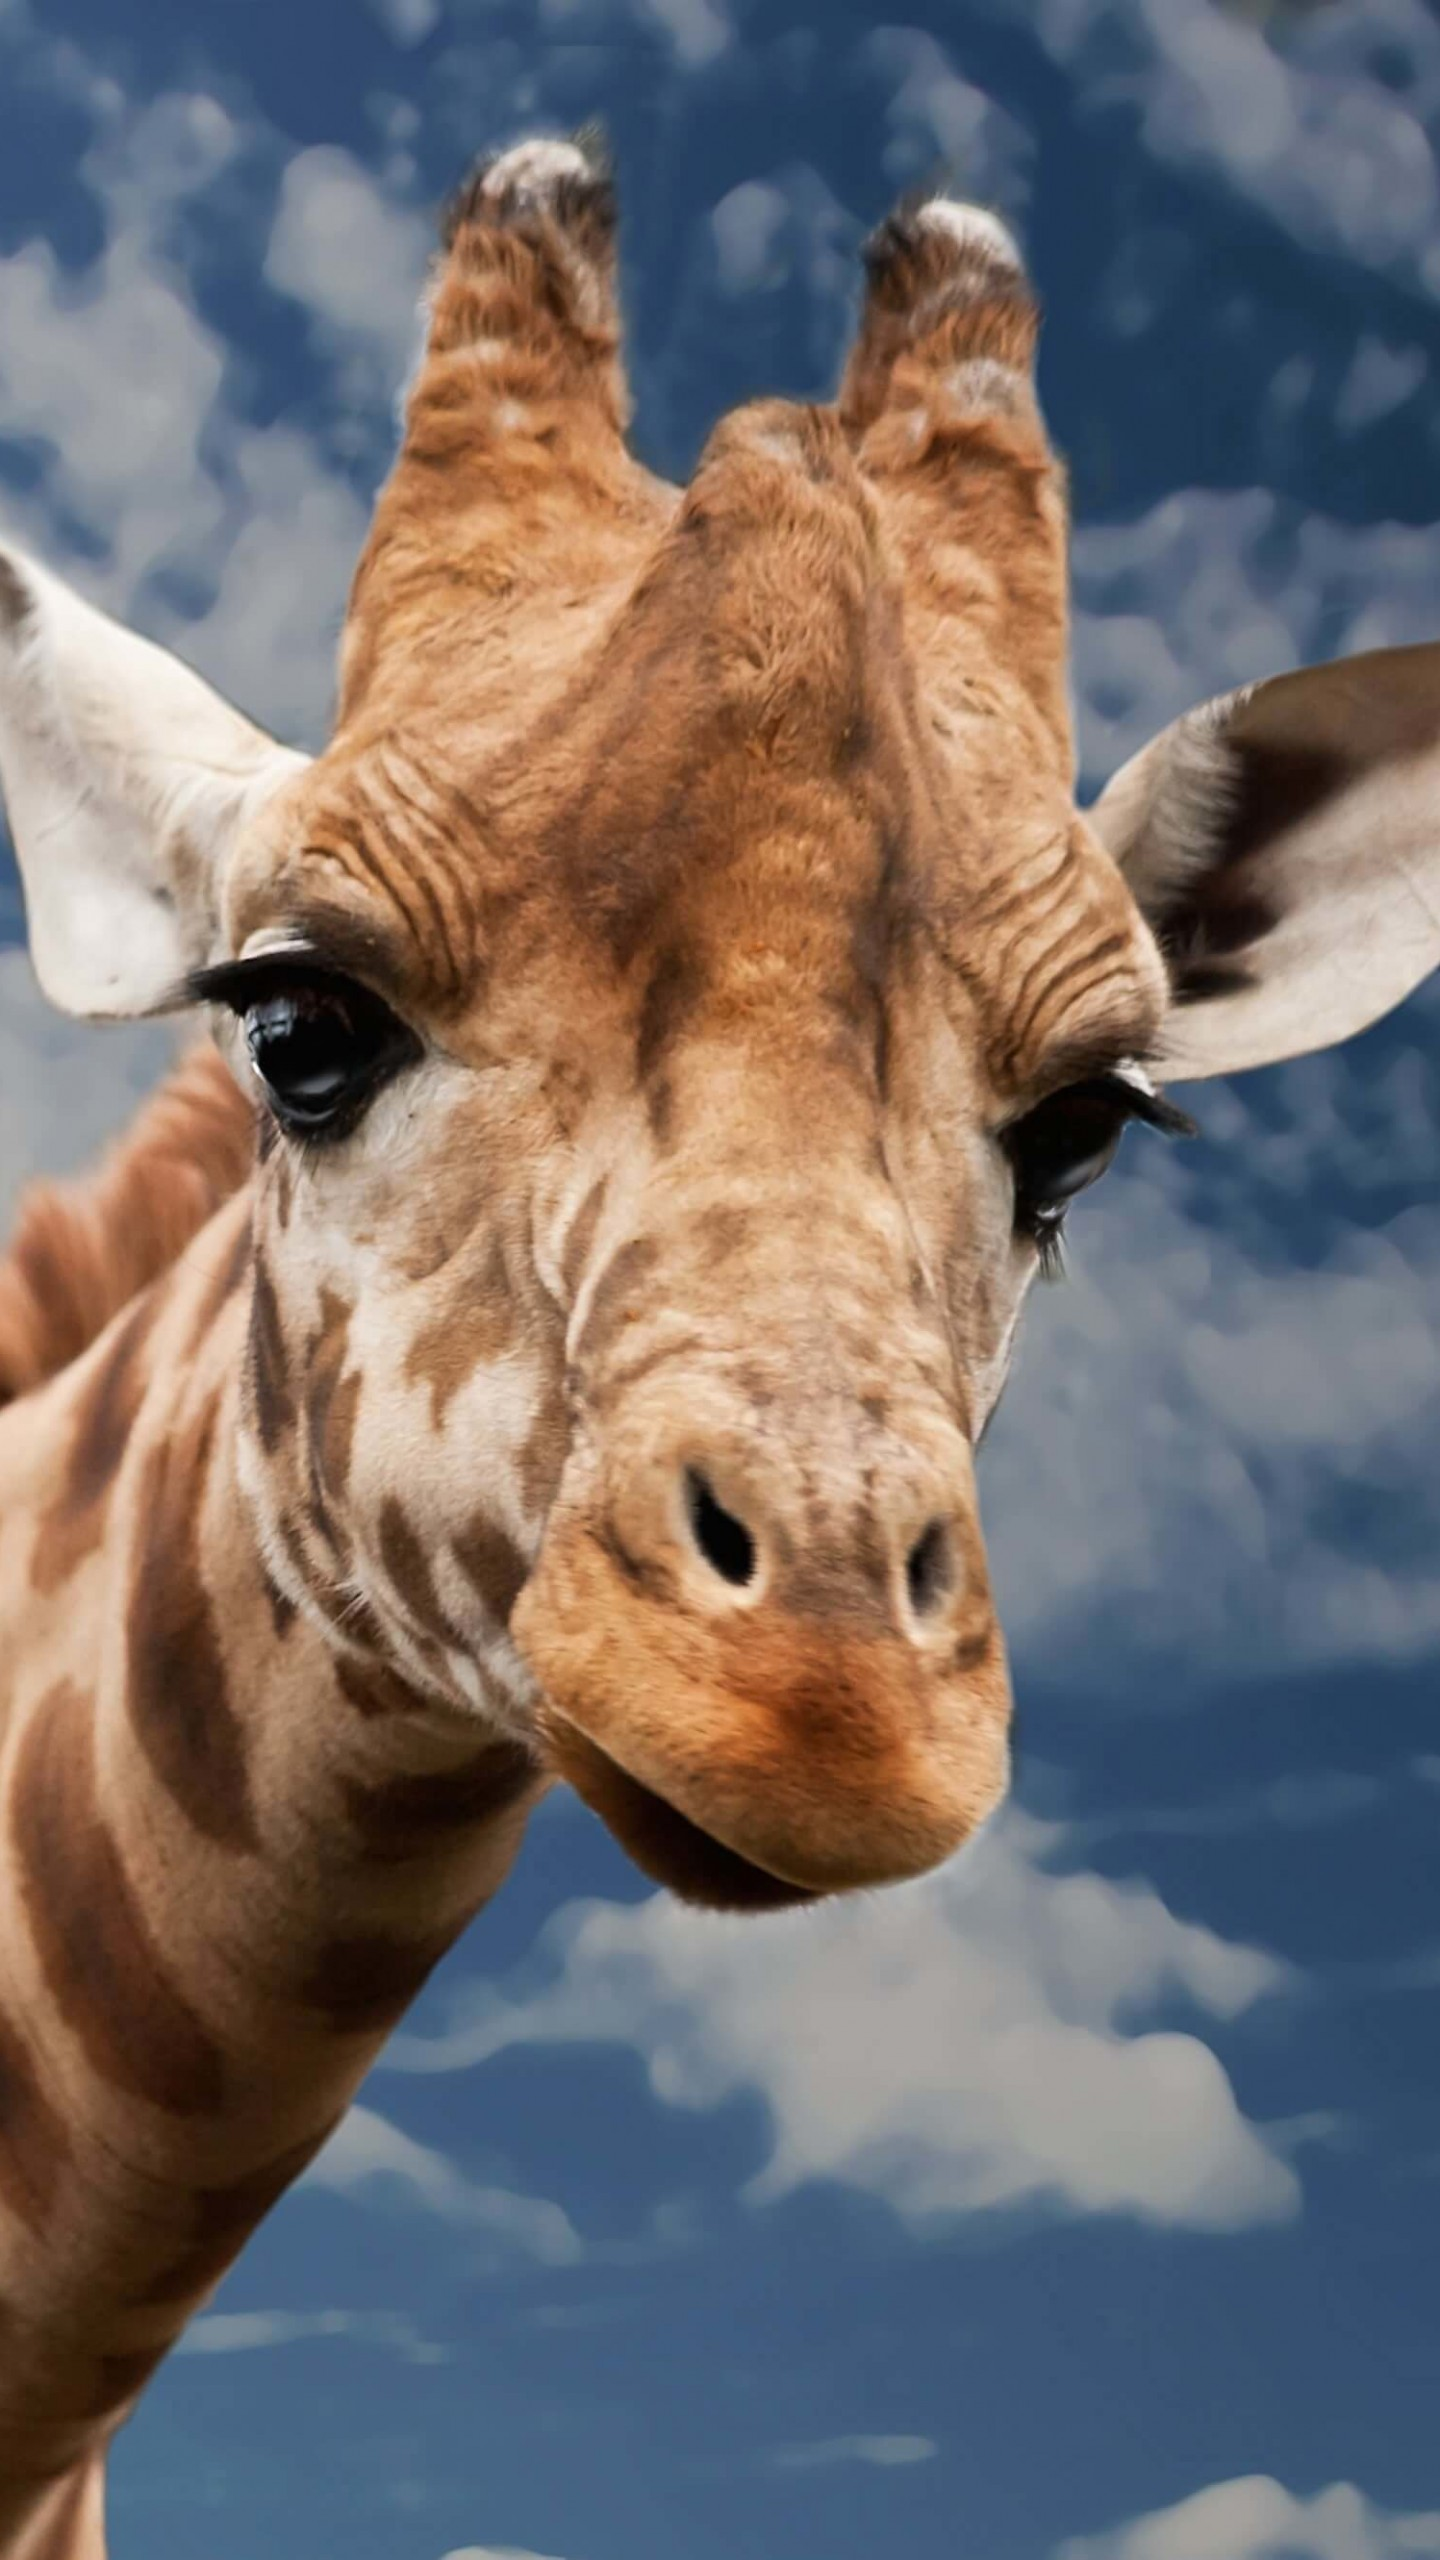 Funny Giraffe Wallpaper for SAMSUNG Galaxy Note 4